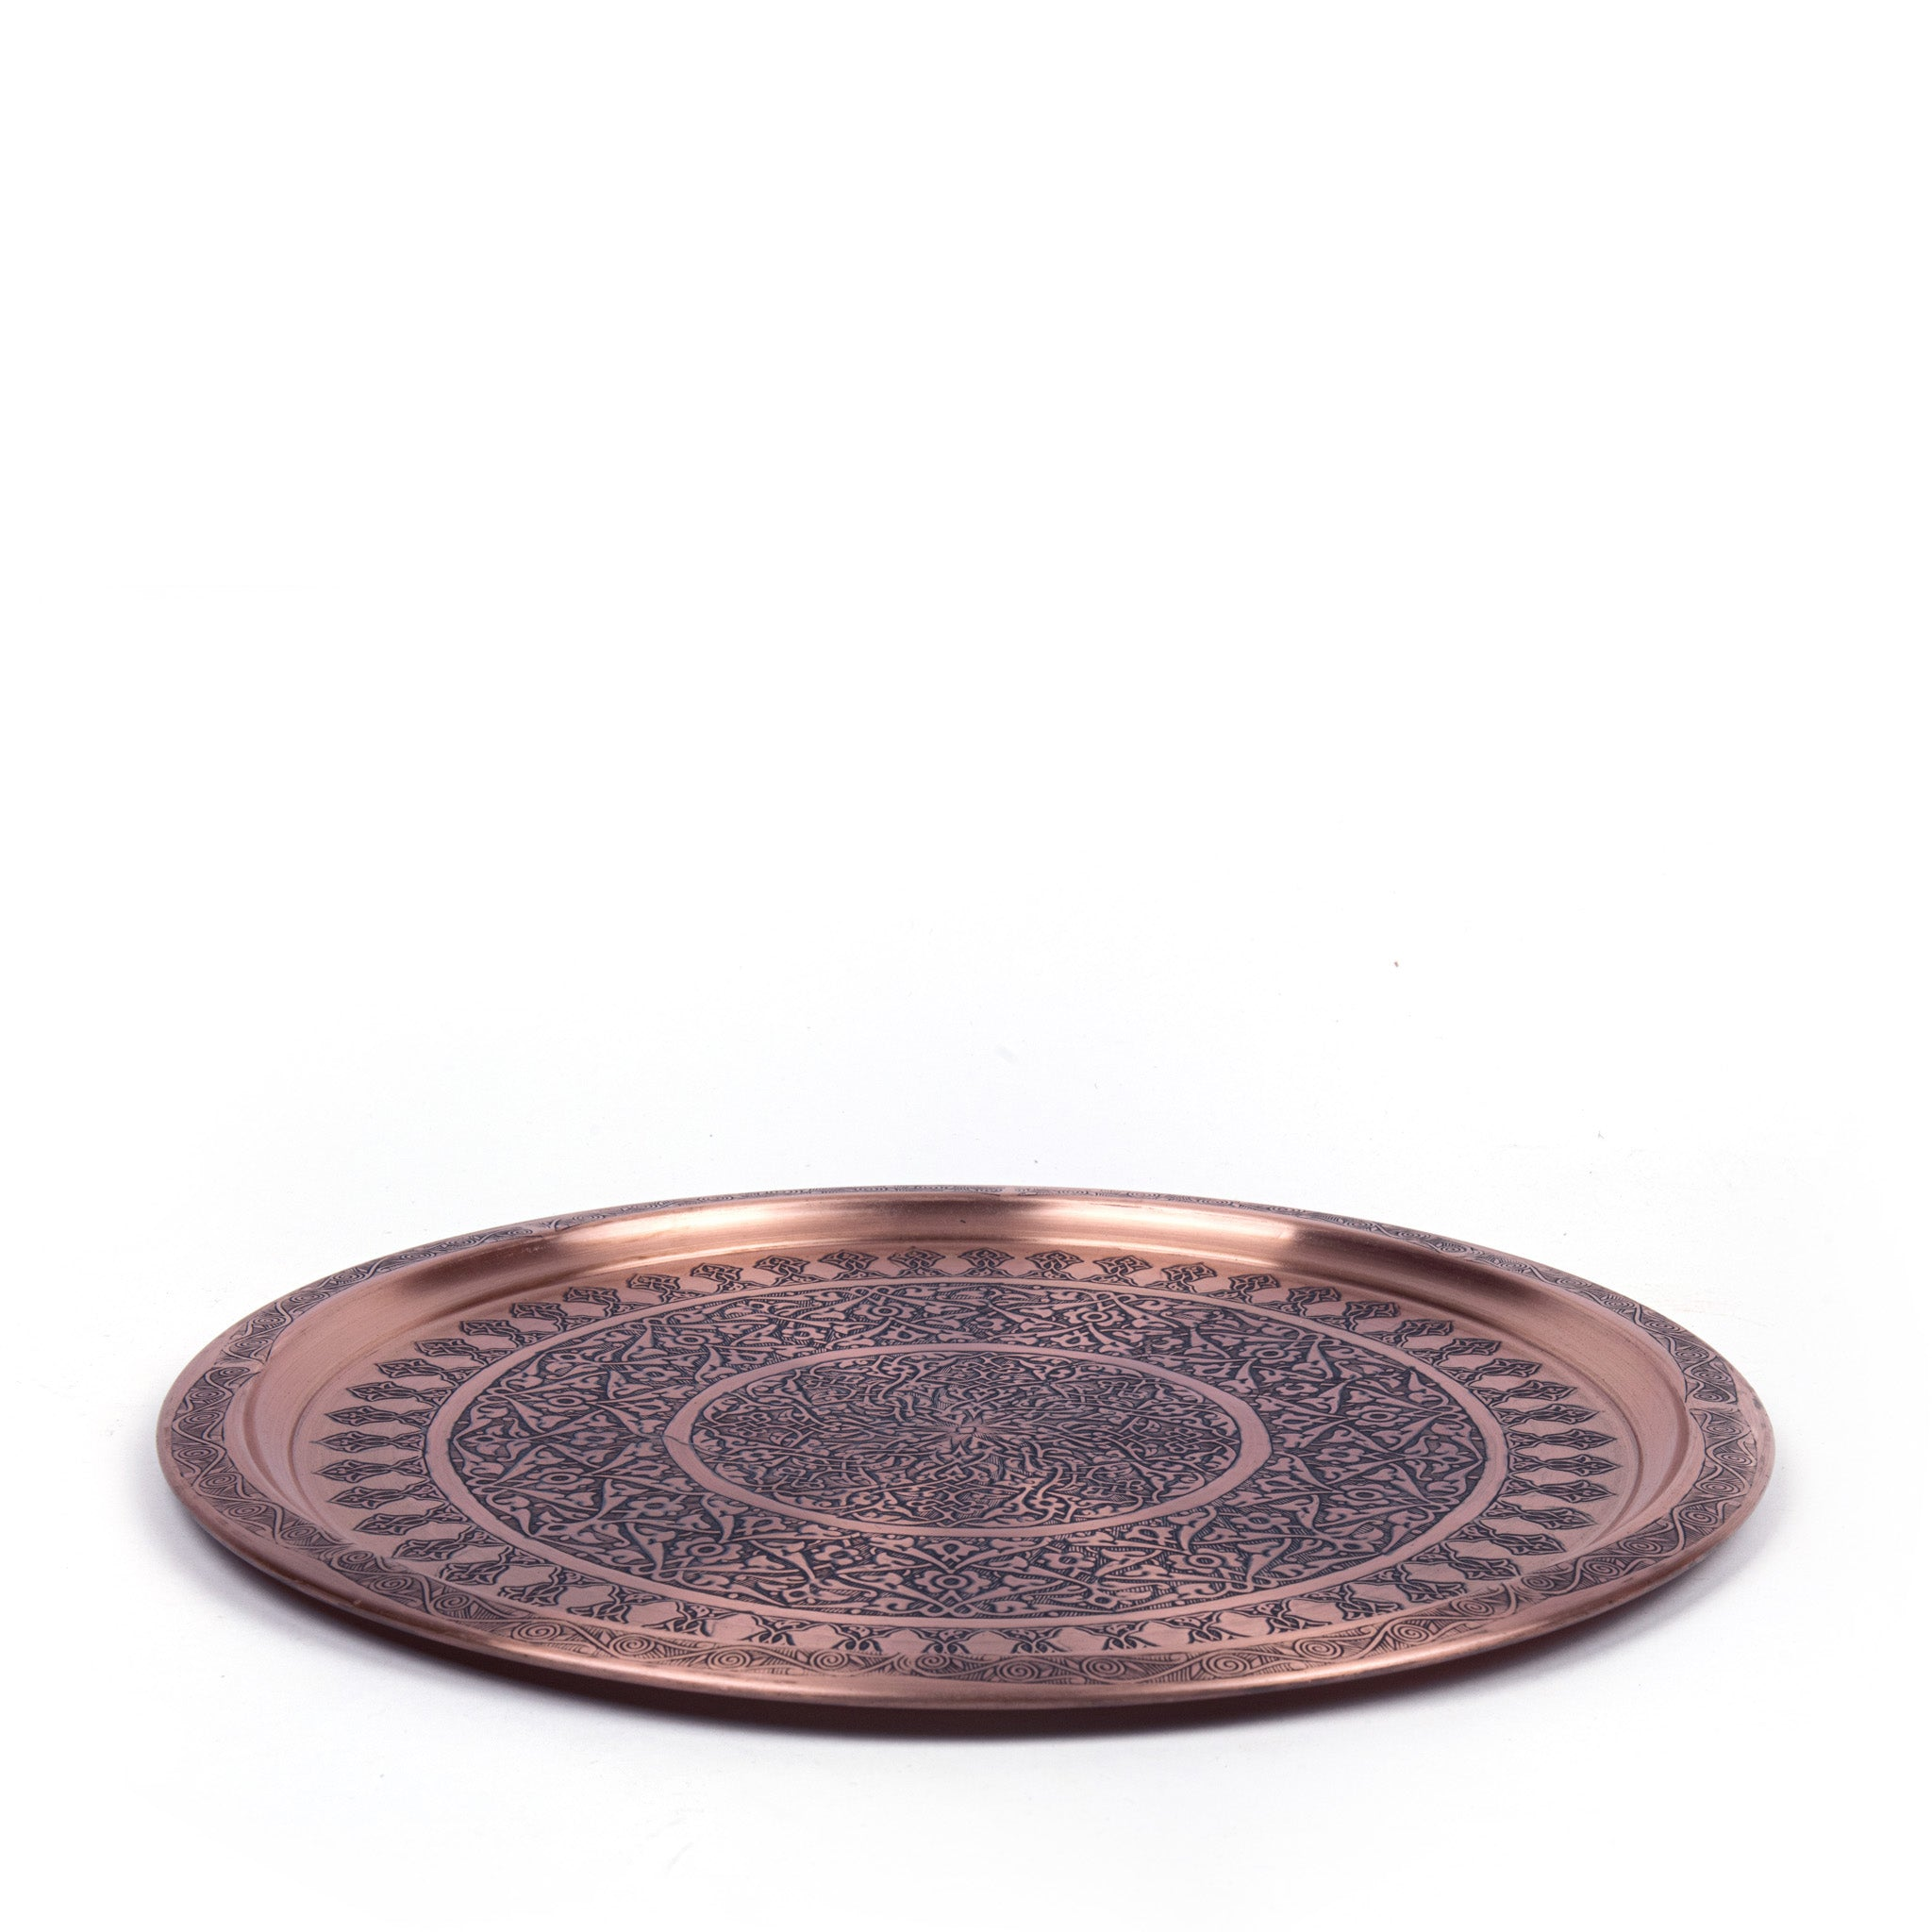 Engraved Antique Round Copper Tray-2